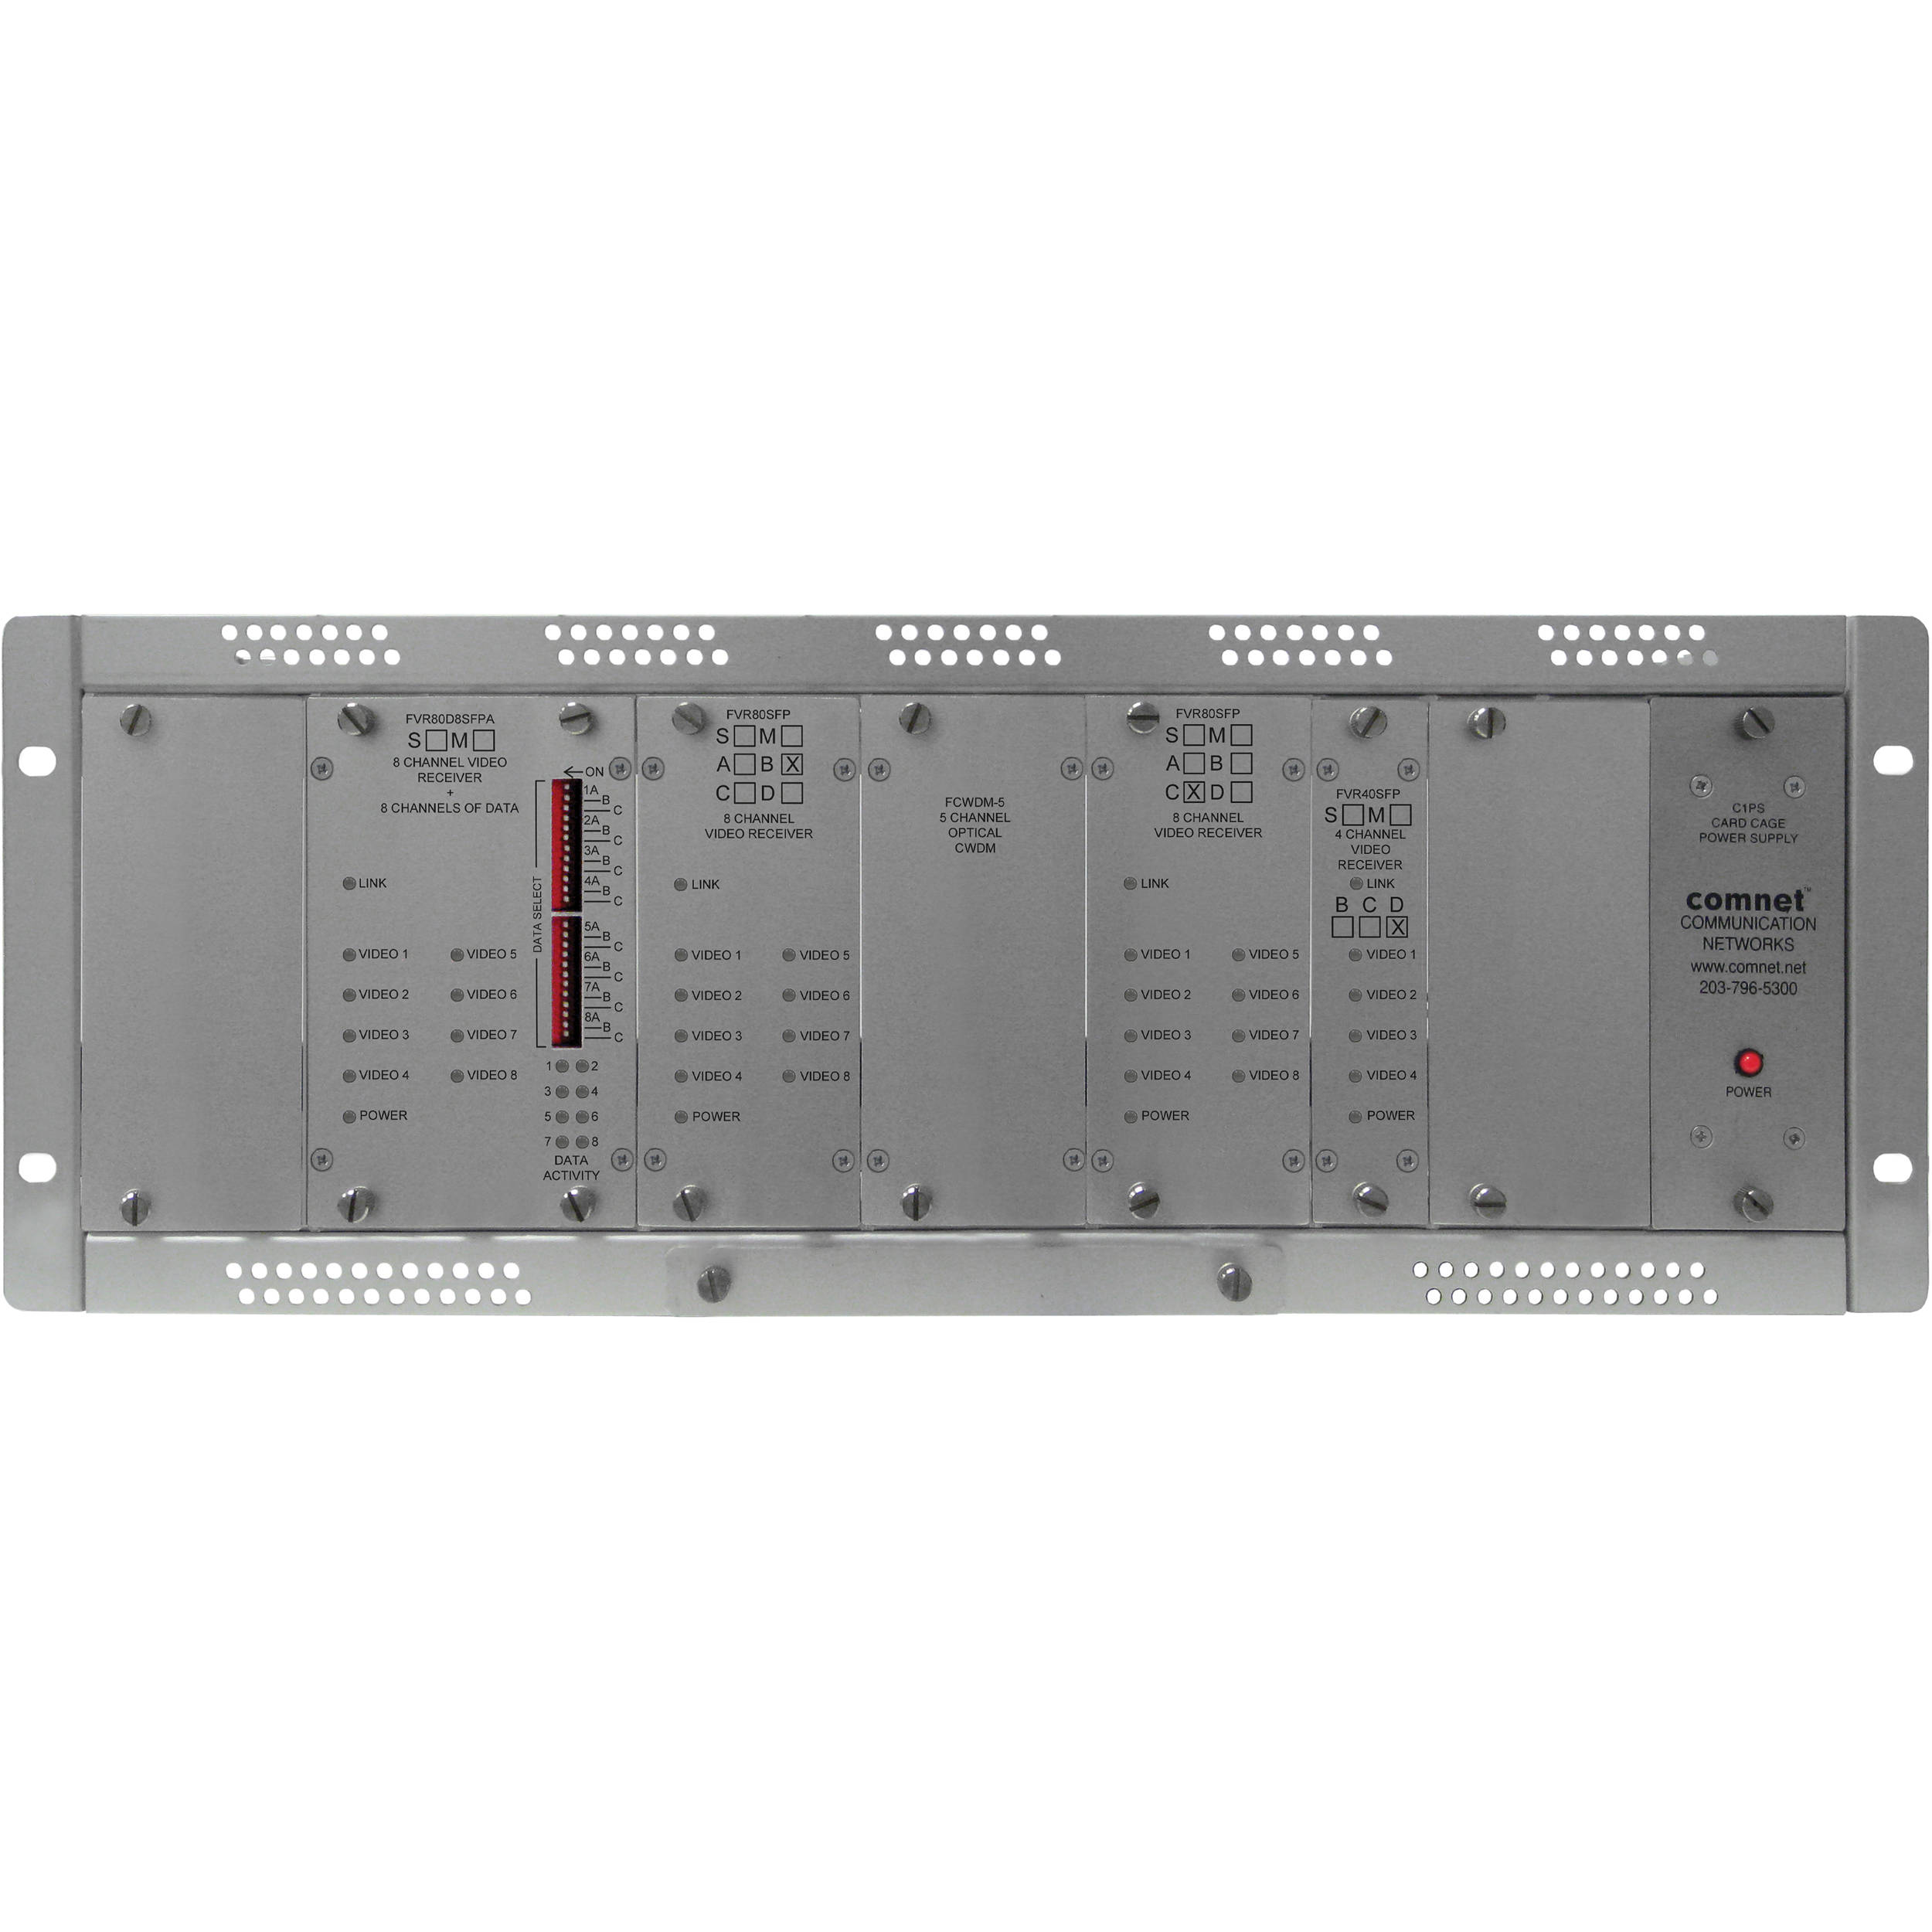 Https C Product 1297115 Reg Dc Fan Controller Takes Bare Bones Approach Analog Content From Comnet Fvr280d8s1 28 Channel Singlemode 10 Bit Digital 1253651